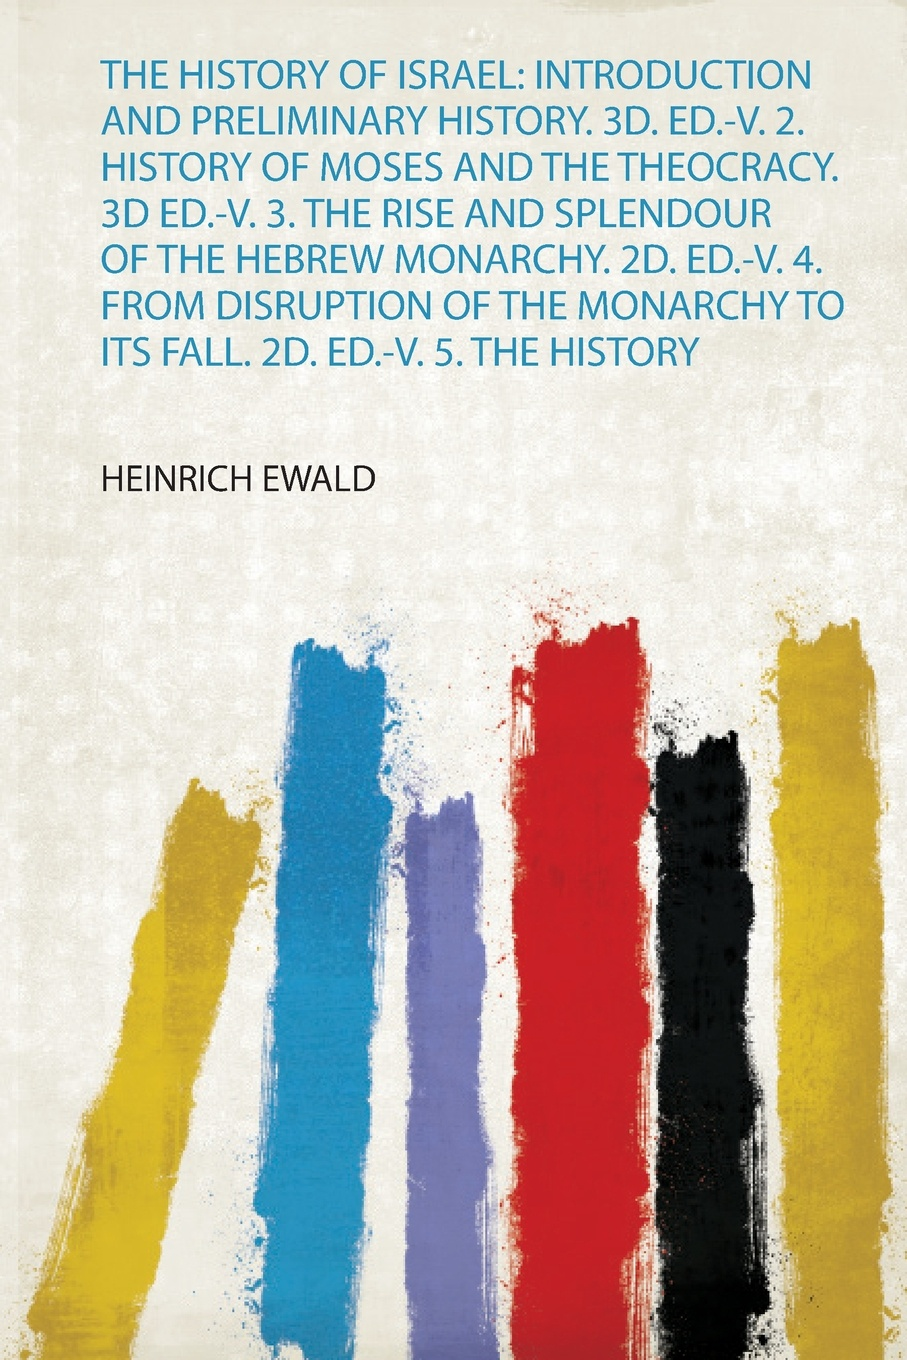 Heinrich Ewald The History of Israel. Introduction and Preliminary History. 3D. Ed.-V. 2. History of Moses and the Theocracy. 3D Ed.-V. 3. the Rise and Splendour of the Hebrew Monarchy. 2D. Ed.-V. 4. from Disruption of the Monarchy to Its Fall. 2D. Ed.-V. 5. the... francis william newman a history of the hebrew monarchy from the administration of samuel to the babylonish captivity